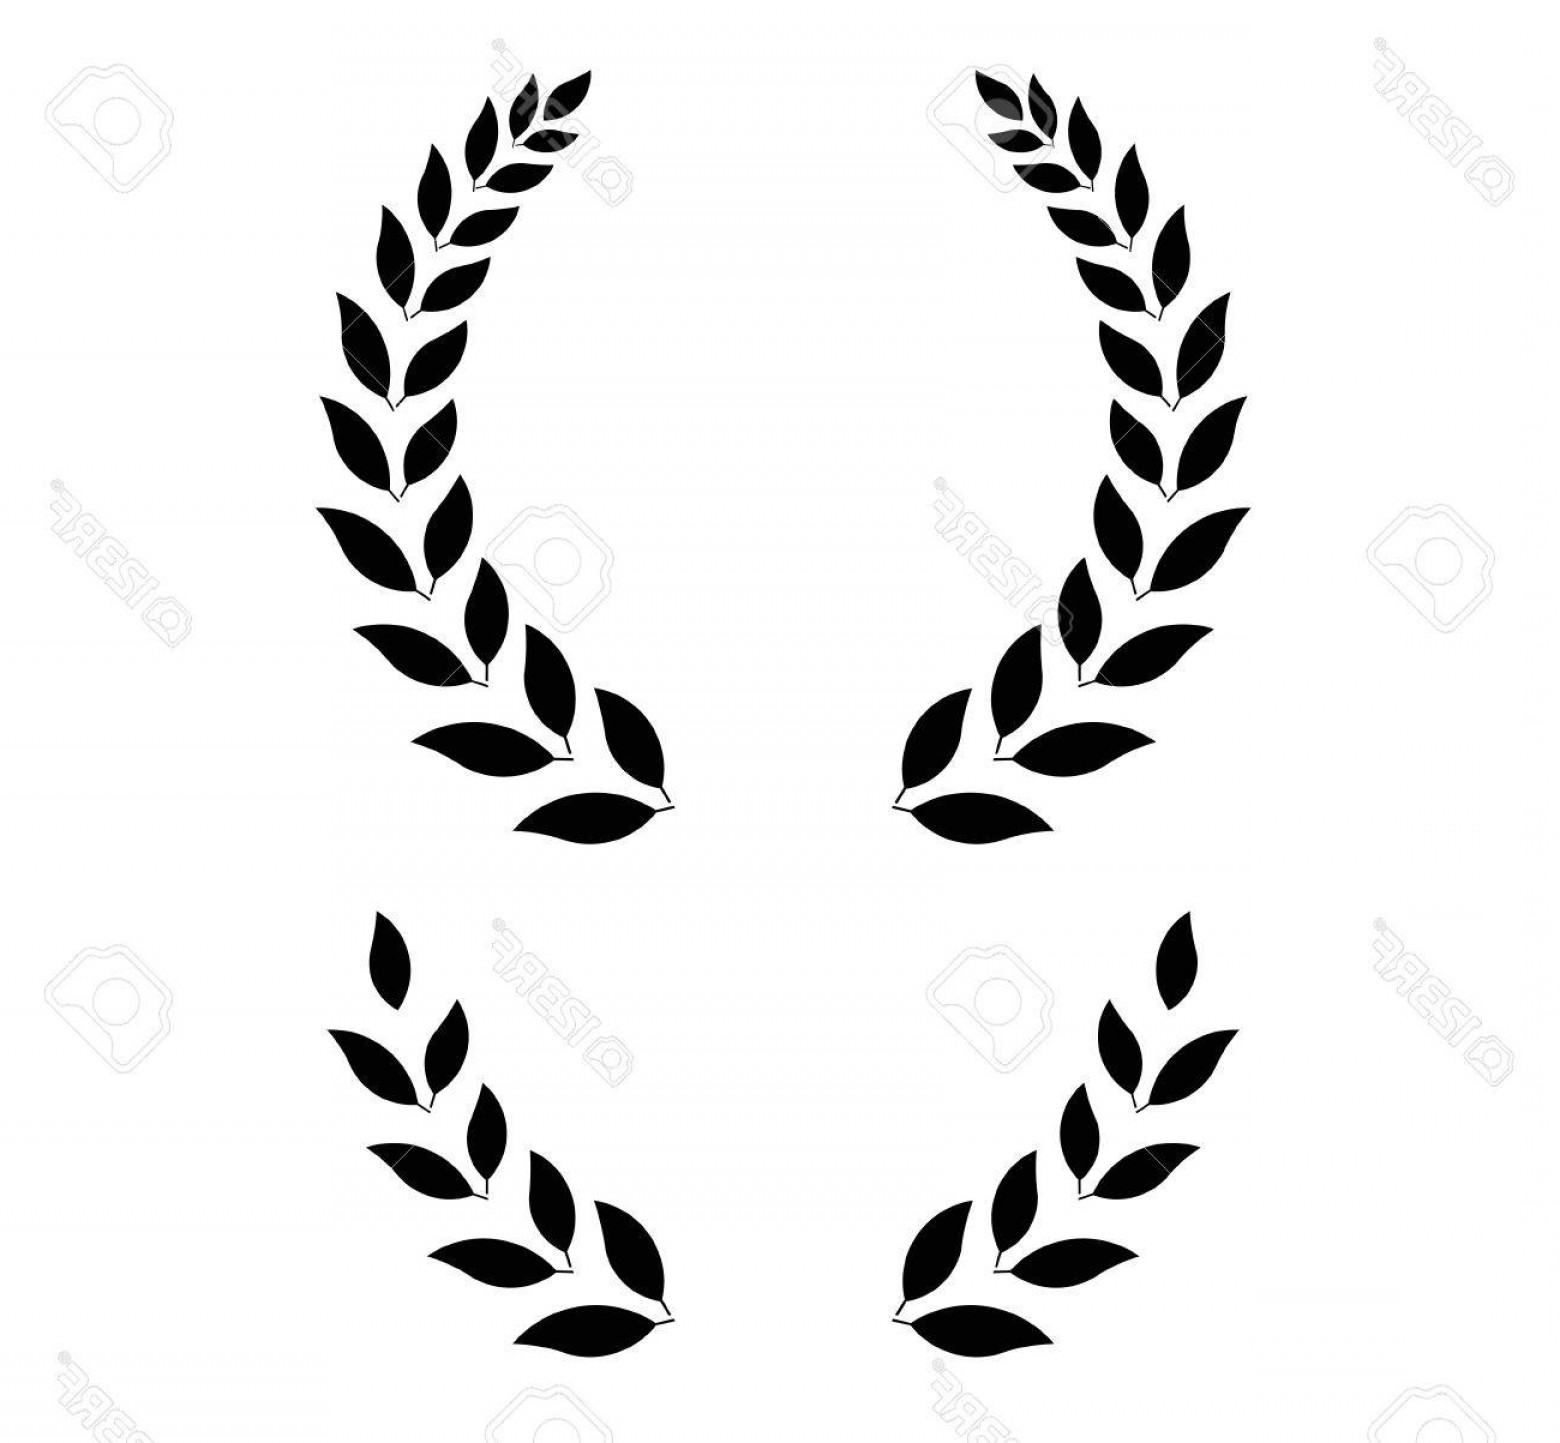 Half Leaf Wreath Vector: Photostock Vector Simple Laurel Wreath Round And Half For Main Emblem And Bottom Vector Format Fully Editable You Can